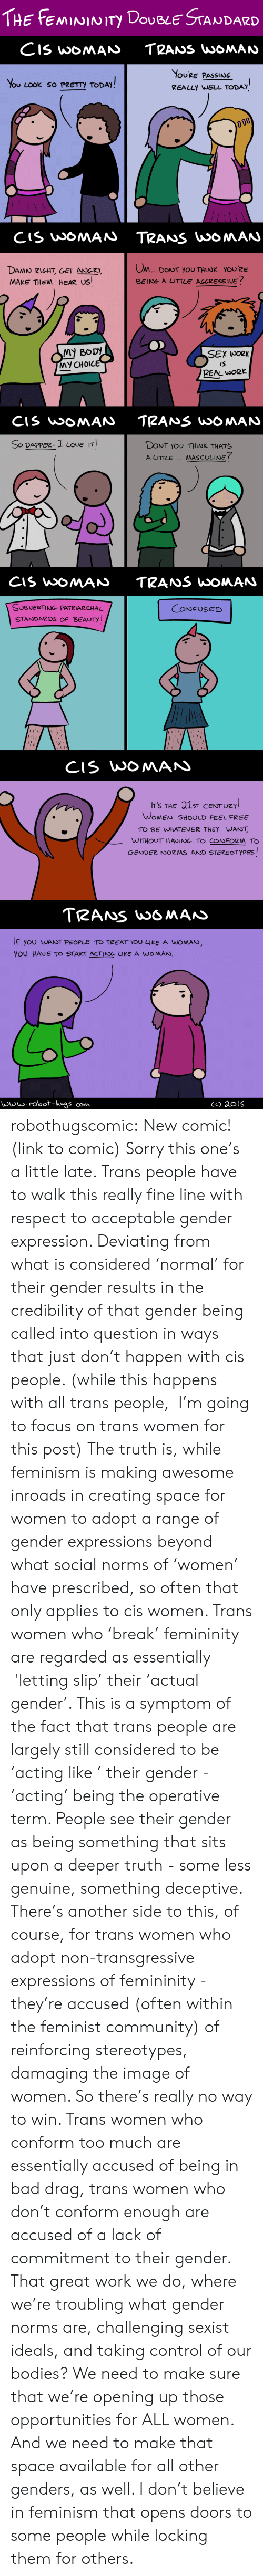 norms: THE FEMININITY DOvBLE STANDARD  You Look so PRETTY TODAY  YOURE PASSING  REALLY WELL TODAY   CIS USOMAAN TRANS UooMAU  DAMN RIGHT GET AGRY  MAKE THEM HEAR US!  Ovn... DOUT YOU THINK YouRe  BEING A LITTLE AGGRESS IUE?  MY BODY  MY CHOIC  SEx wozx  iS  REAL wO2K  So DAPPER- I LOuE IT  DONT YOU THINK THAT3  A LITTLE MASCULINE?   SUBUERTING- PATRIARCHAL  STANDARDS OF BEAUTY  CONFUSED  ITS THE 31ST CENTURY  WOMEN SHOULD FEEL FREE  TO BE WHATEVER THEY WANT  WITHOUT HAUING TO CONFORM TO  GENDER NORMS AND STEREOTYPES   TRANS wo6MAiS  IF you WANT PEOPLE TO TREAT YOU 니 KE A WOMAN  YOU HAUE TO START ACTING Uke A WOMAJ. robothugscomic: New comic! (link to comic) Sorry this one's a little late.  Trans people have to walk this really fine line with respect to acceptable gender expression. Deviating from what is considered 'normal' for their gender results in the credibility of that gender being called into question in ways that just don't happen with cis people.  (while this happens with all trans people,  I'm going to focus on trans women for this post) The truth is, while feminism is making awesome inroads in creating space for women to adopt a range of gender expressions beyond what social norms of 'women' have prescribed, so often that only applies to cis women. Trans women who 'break' femininity are regarded as essentially  'letting slip' their 'actual gender'.  This is a symptom of the fact that trans people are largely still considered to be 'acting like ' their gender - 'acting' being the operative term. People see their gender as being something that sits upon a deeper truth - some less genuine, something deceptive.  There's another side to this, of course, for trans women who adopt non-transgressive expressions of femininity - they're accused (often within the feminist community) of reinforcing stereotypes, damaging the image of women.  So there's really no way to win. Trans women who conform too much are essentially accused of being in bad drag, trans women who don't conform enough are accused of a lack of commitment to their gender.  That great work we do, where we're troubling what gender norms are, challenging sexist ideals, and taking control of our bodies? We need to make sure that we're opening up those opportunities for ALL women. And we need to make that space available for all other genders, as well. I don't believe in feminism that opens doors to some people while locking them for others.